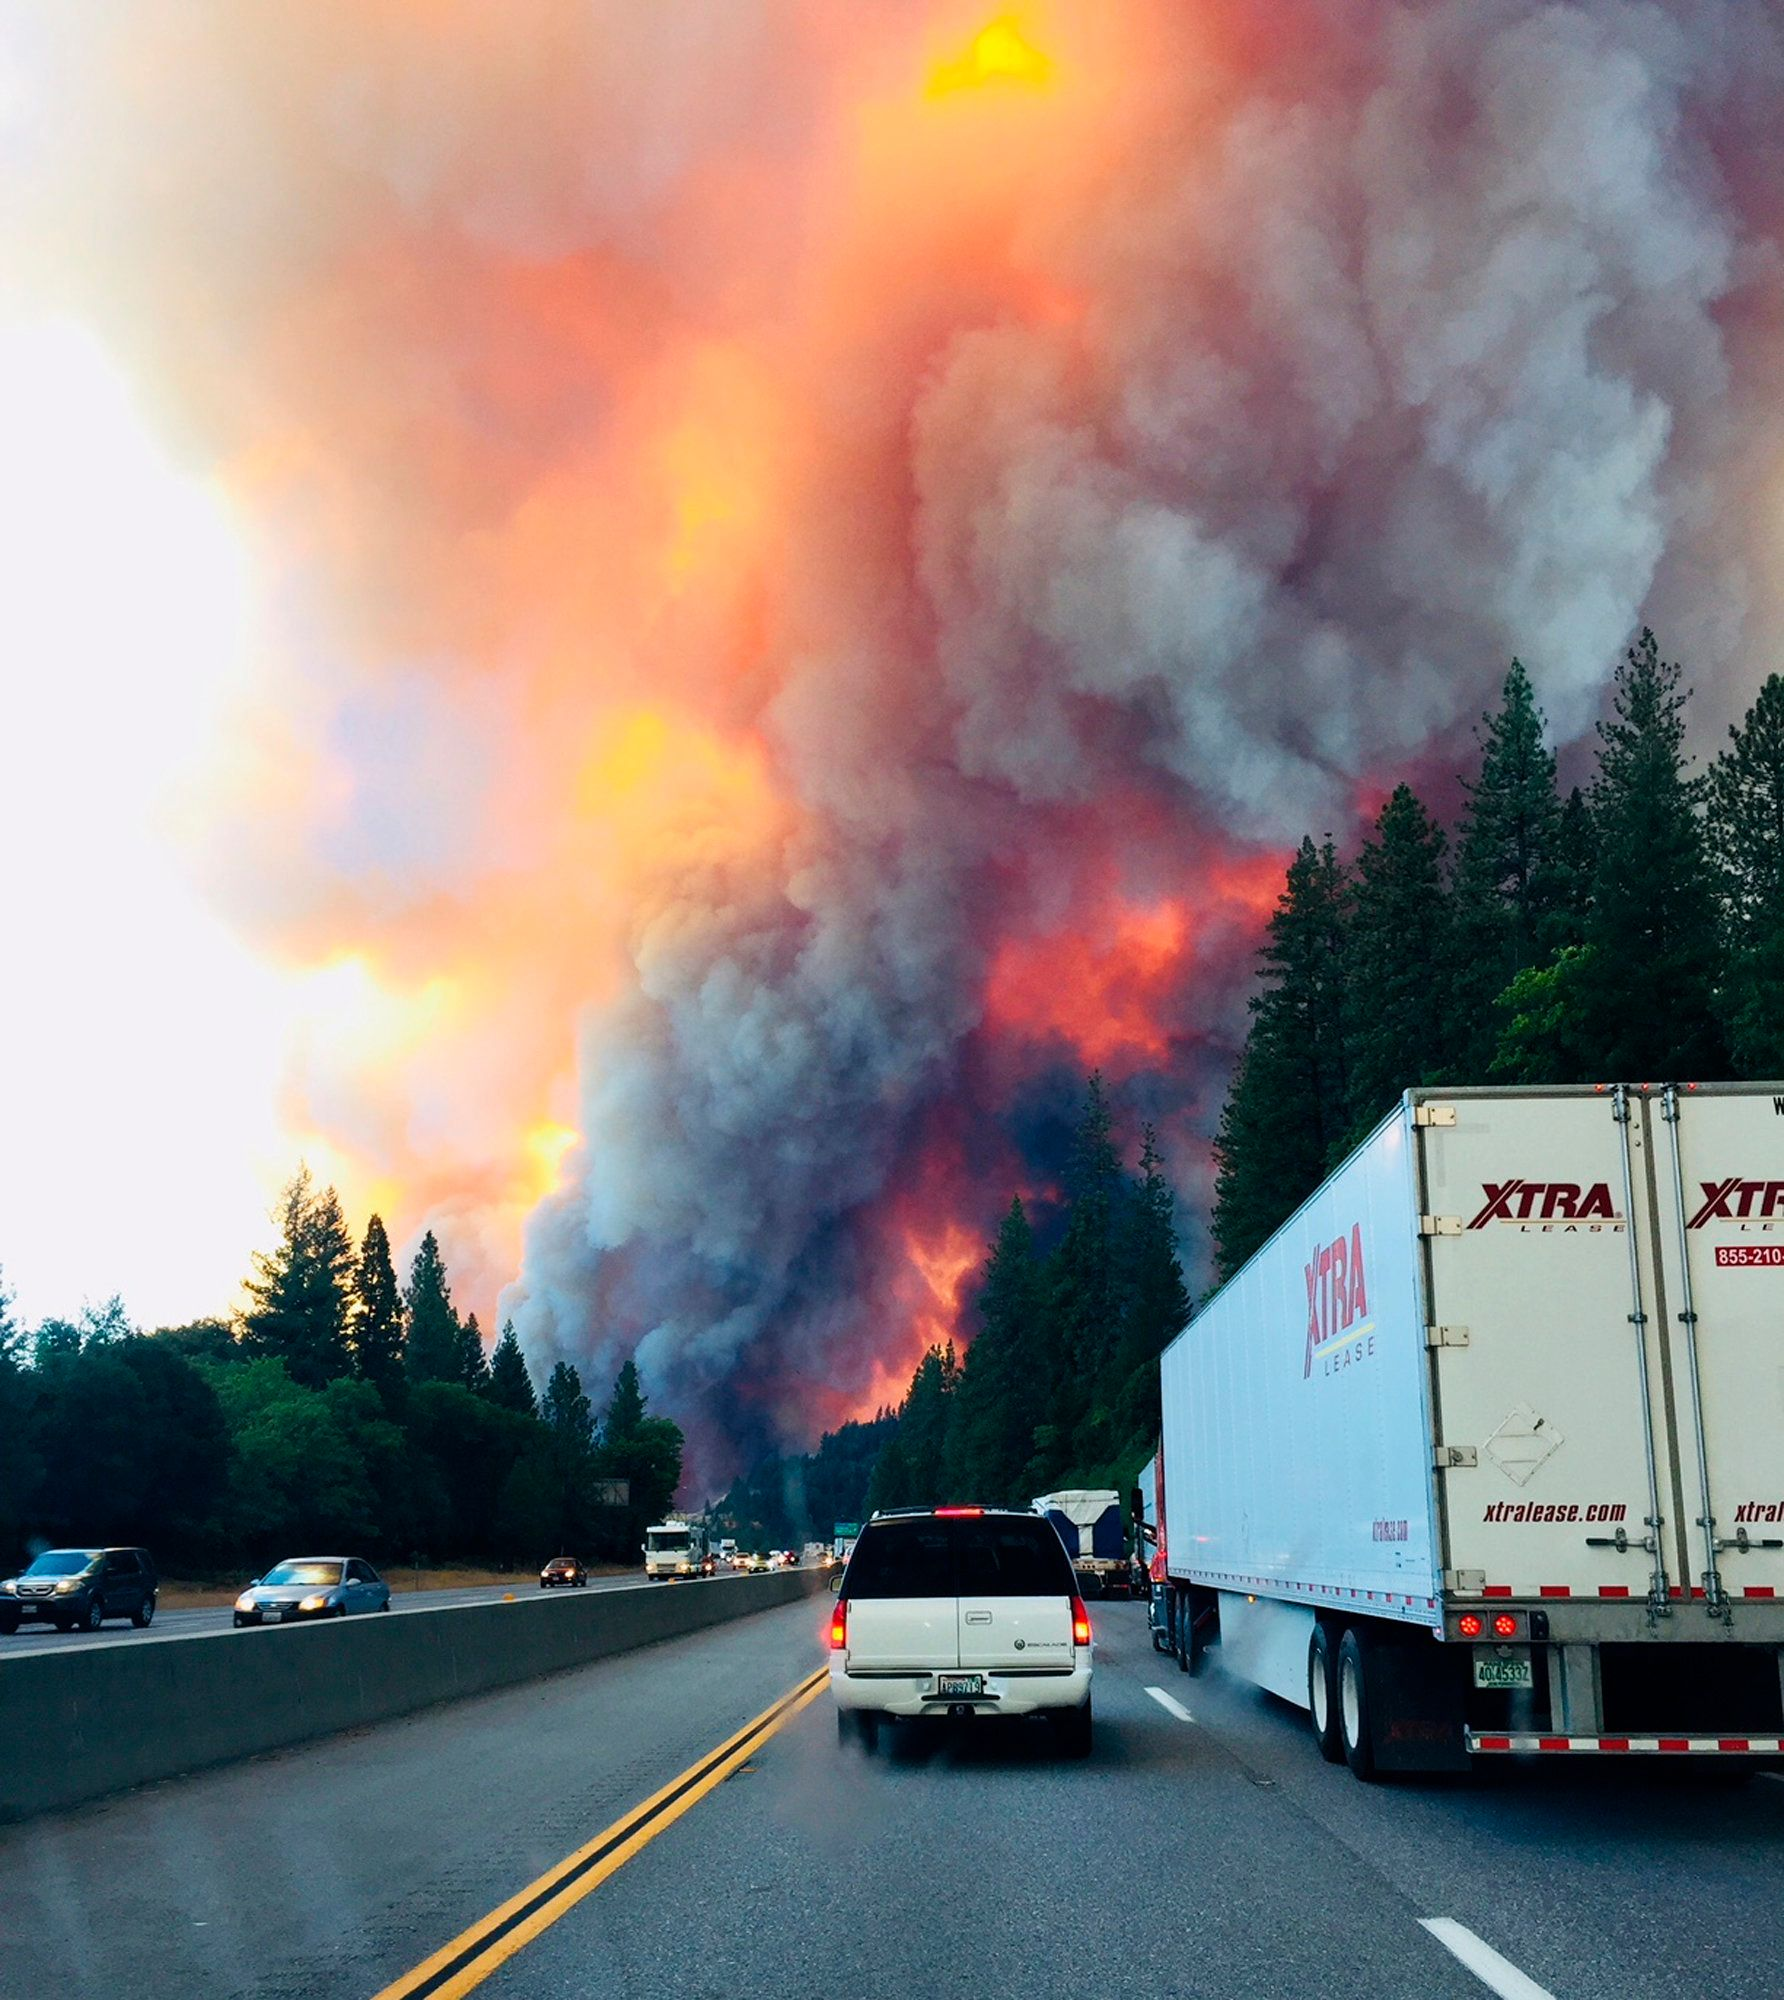 Interstate to stay closed amid California fire